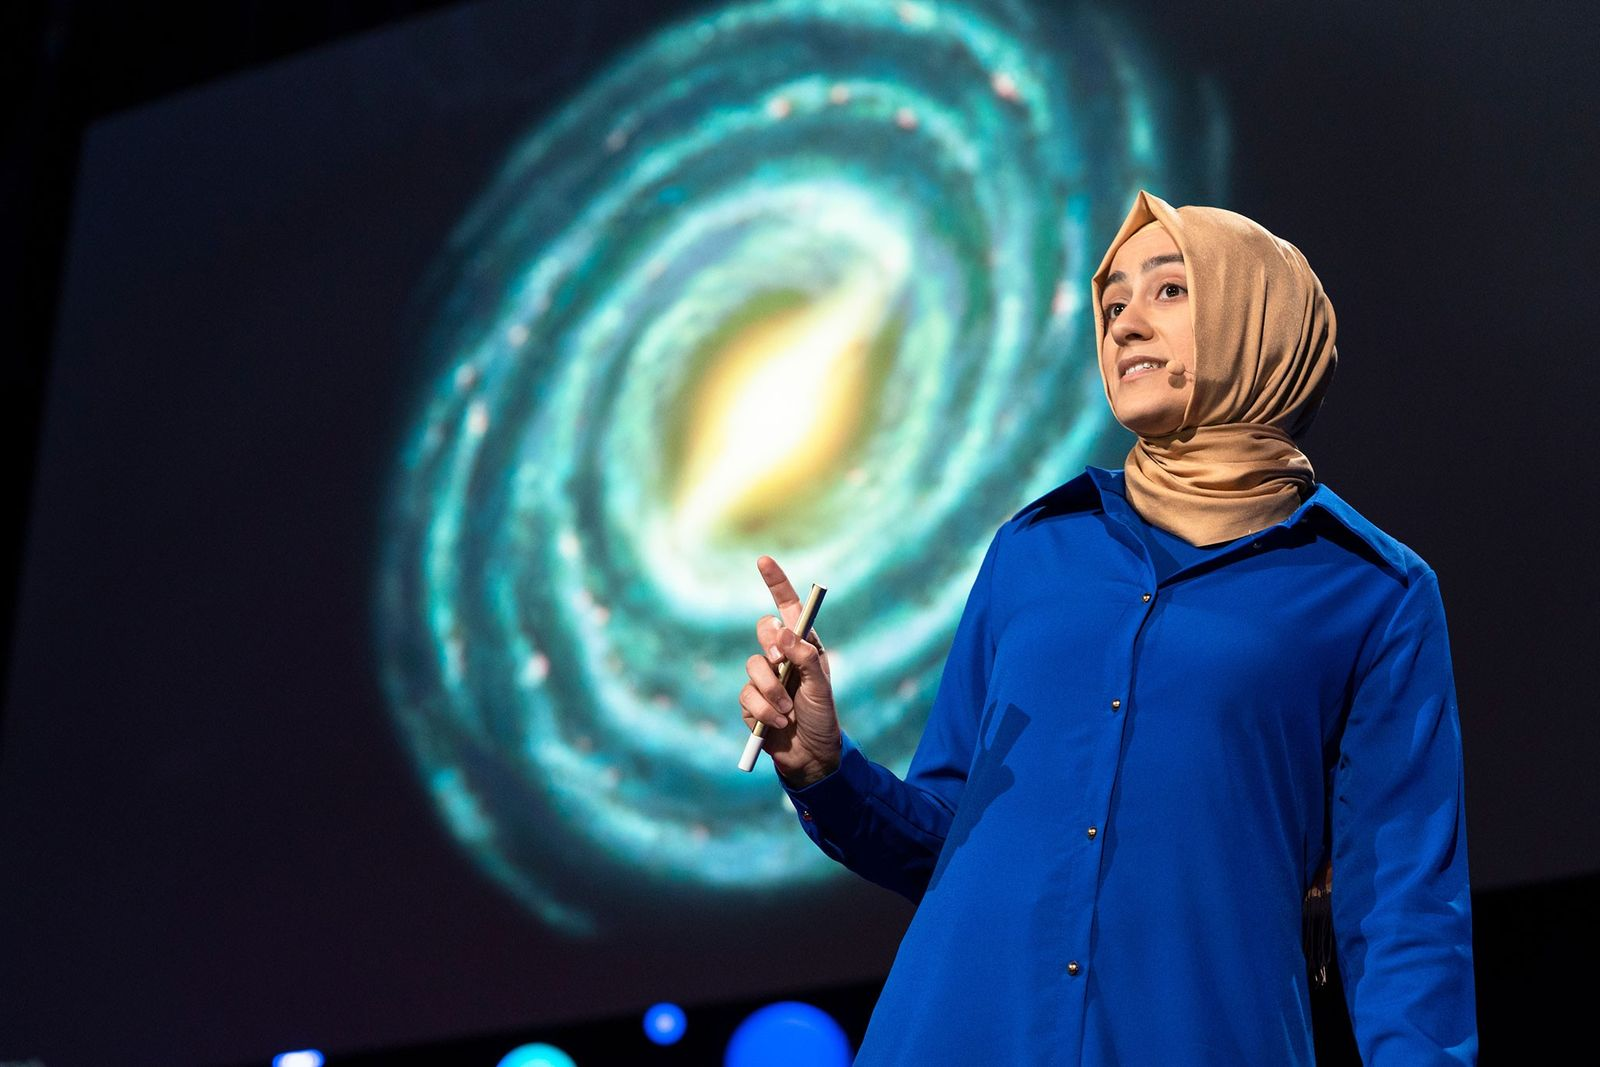 Meet the woman who discovered a whole new type of galaxy